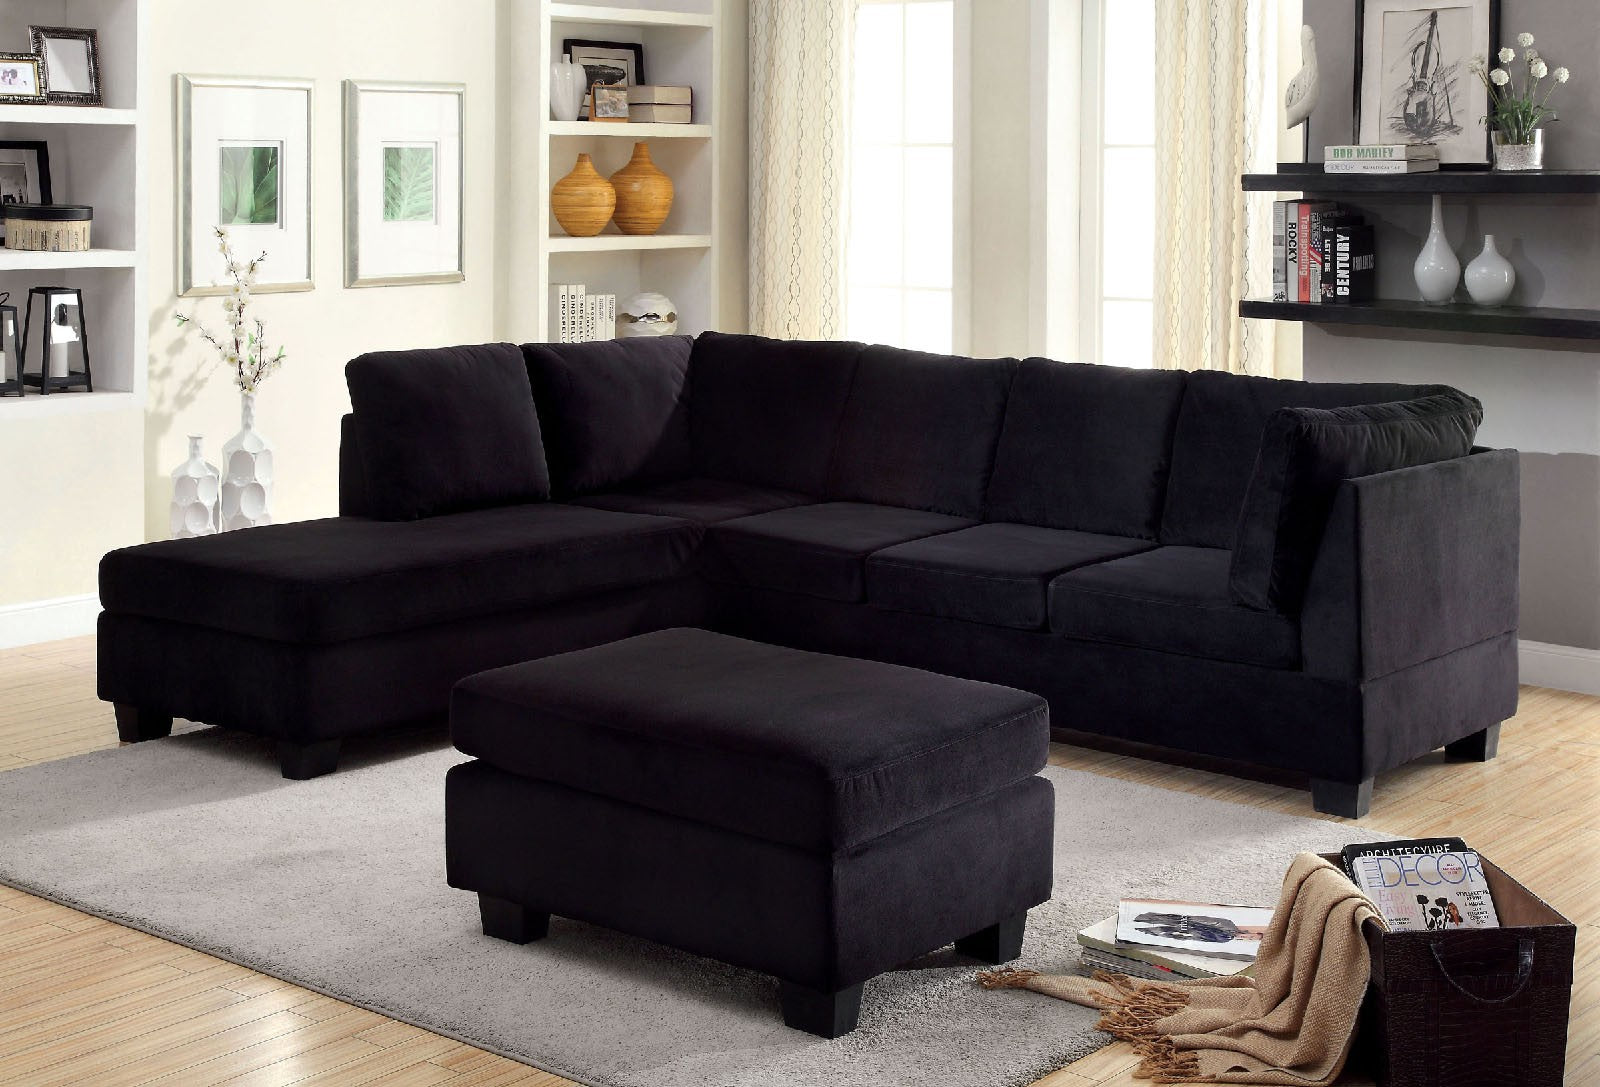 Lomma Black Contemporary Flannelette Fabric Plastic Leg Sectional